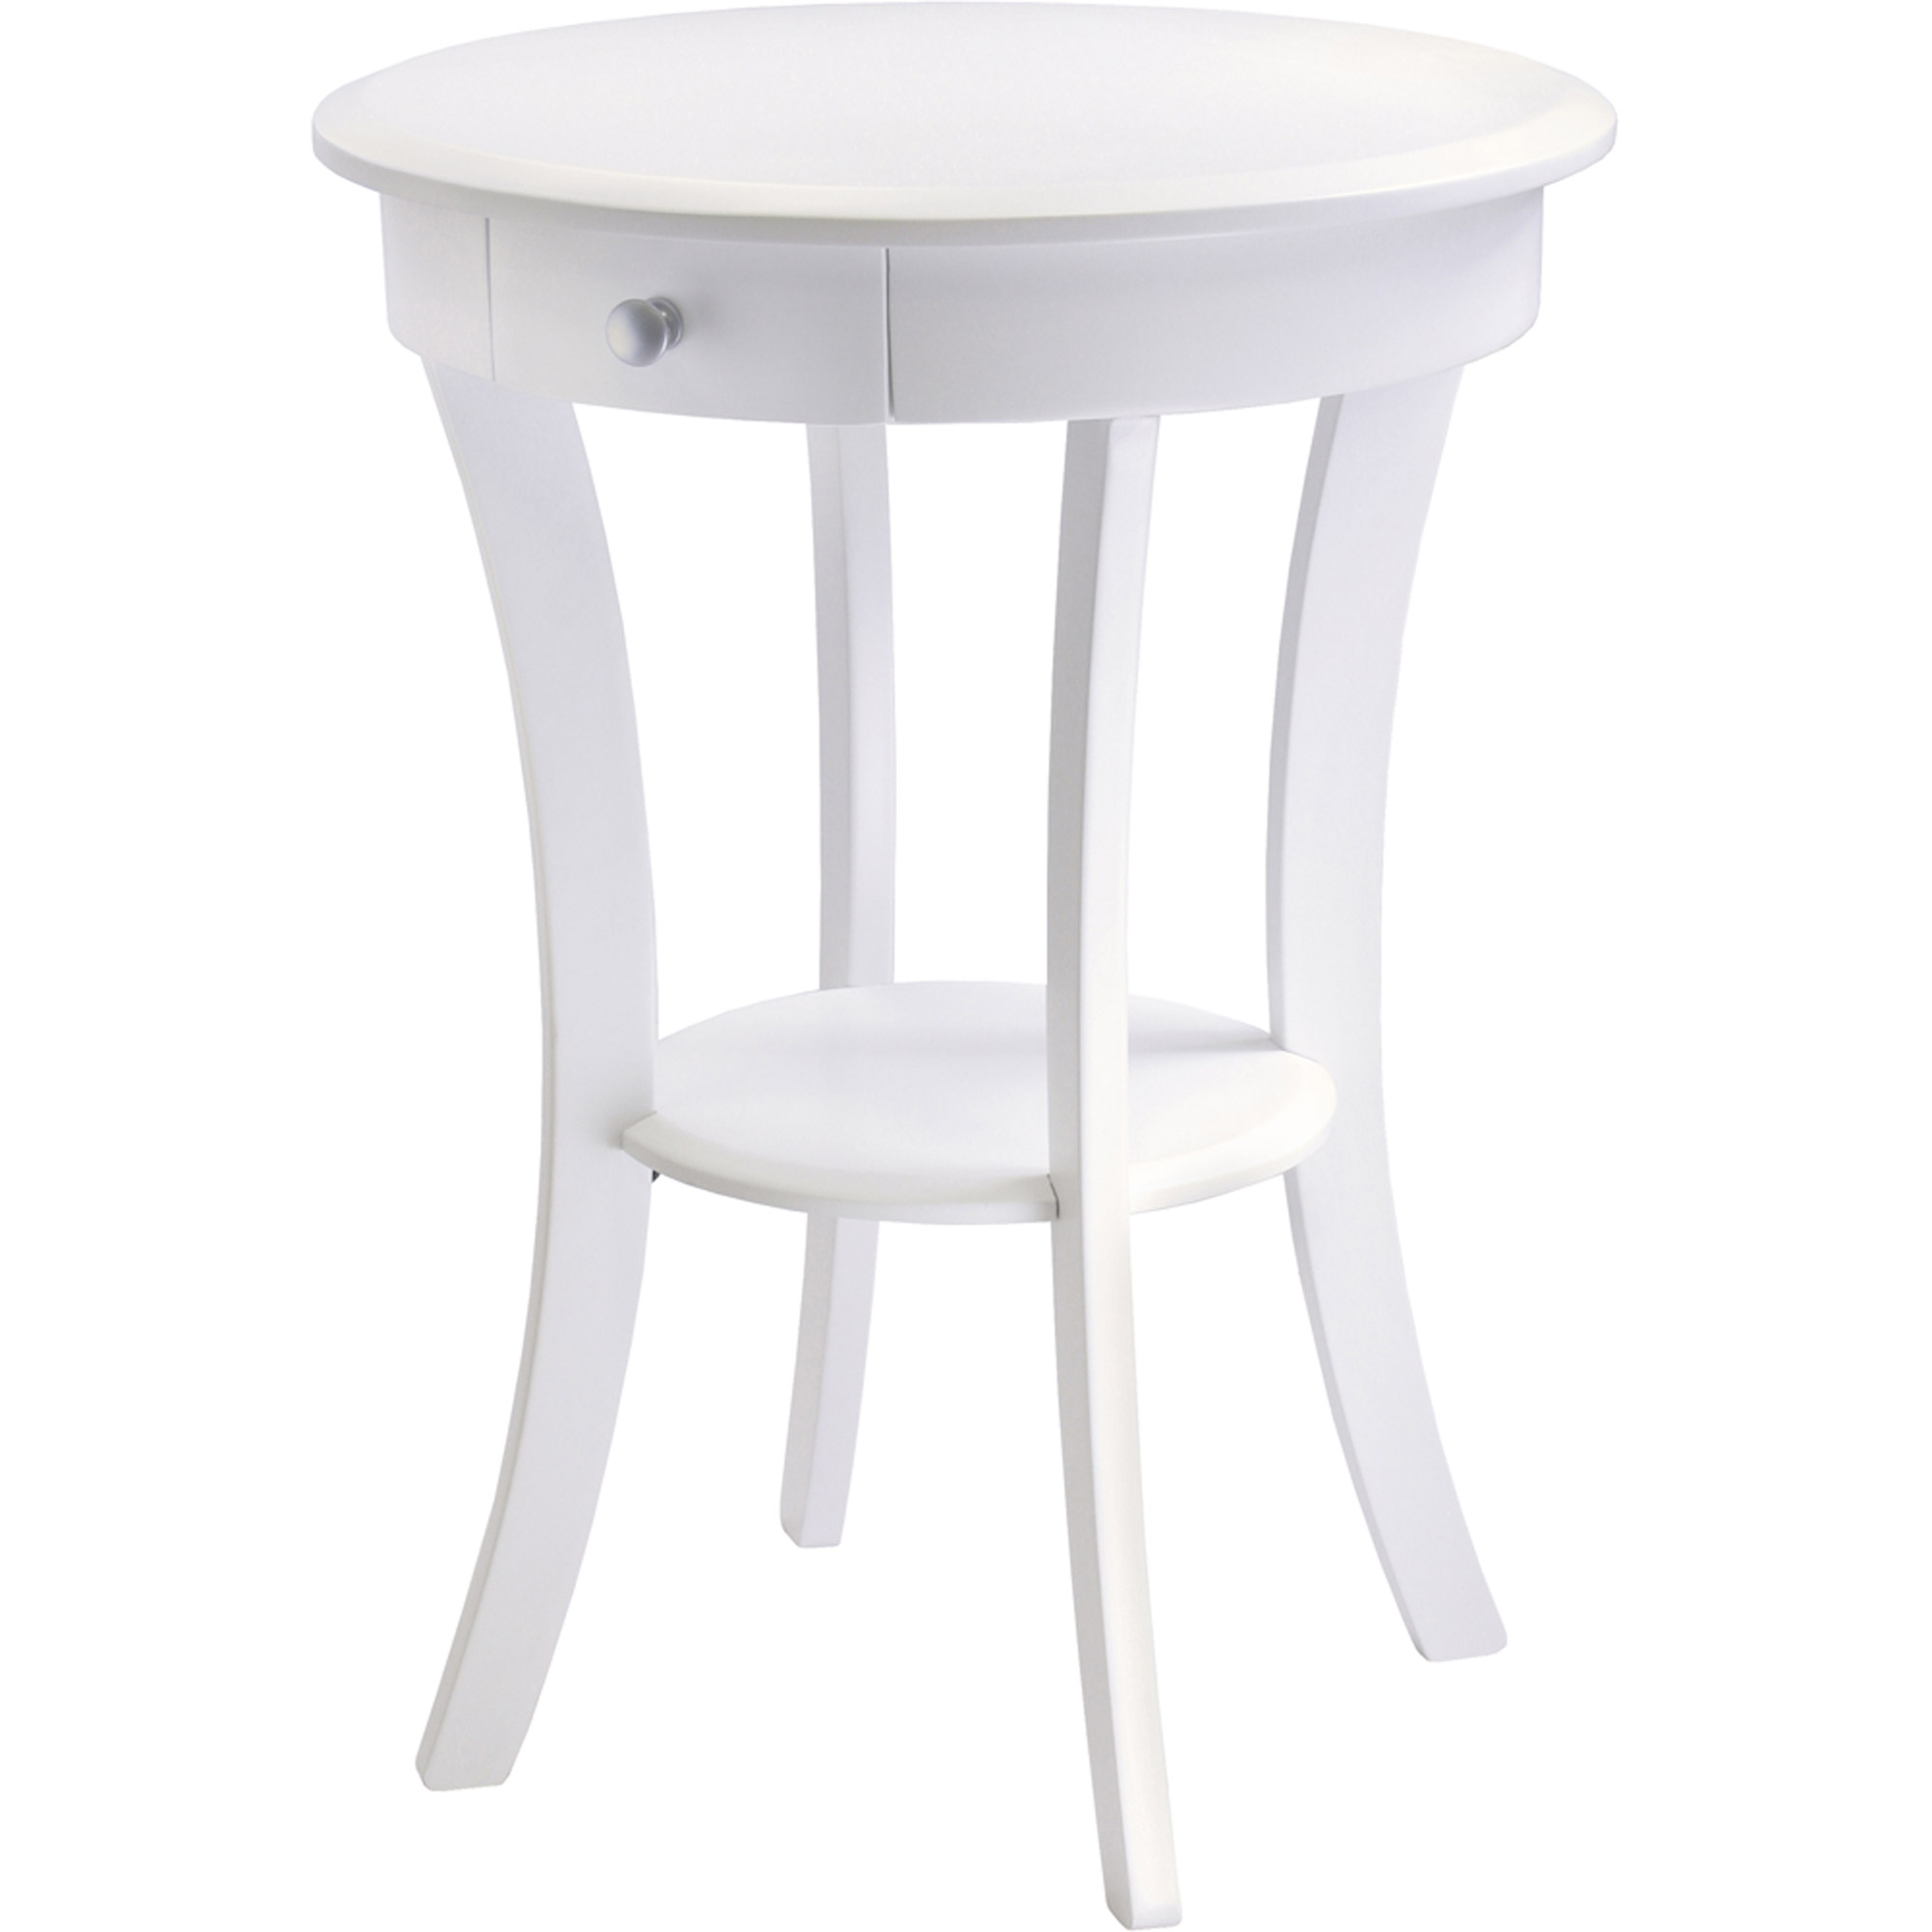 sasha round accent table white with drawers hexagon coffee slim drop leaf canadian tire patio pier dining room chairs hooper console home goods ott patterned living large marble